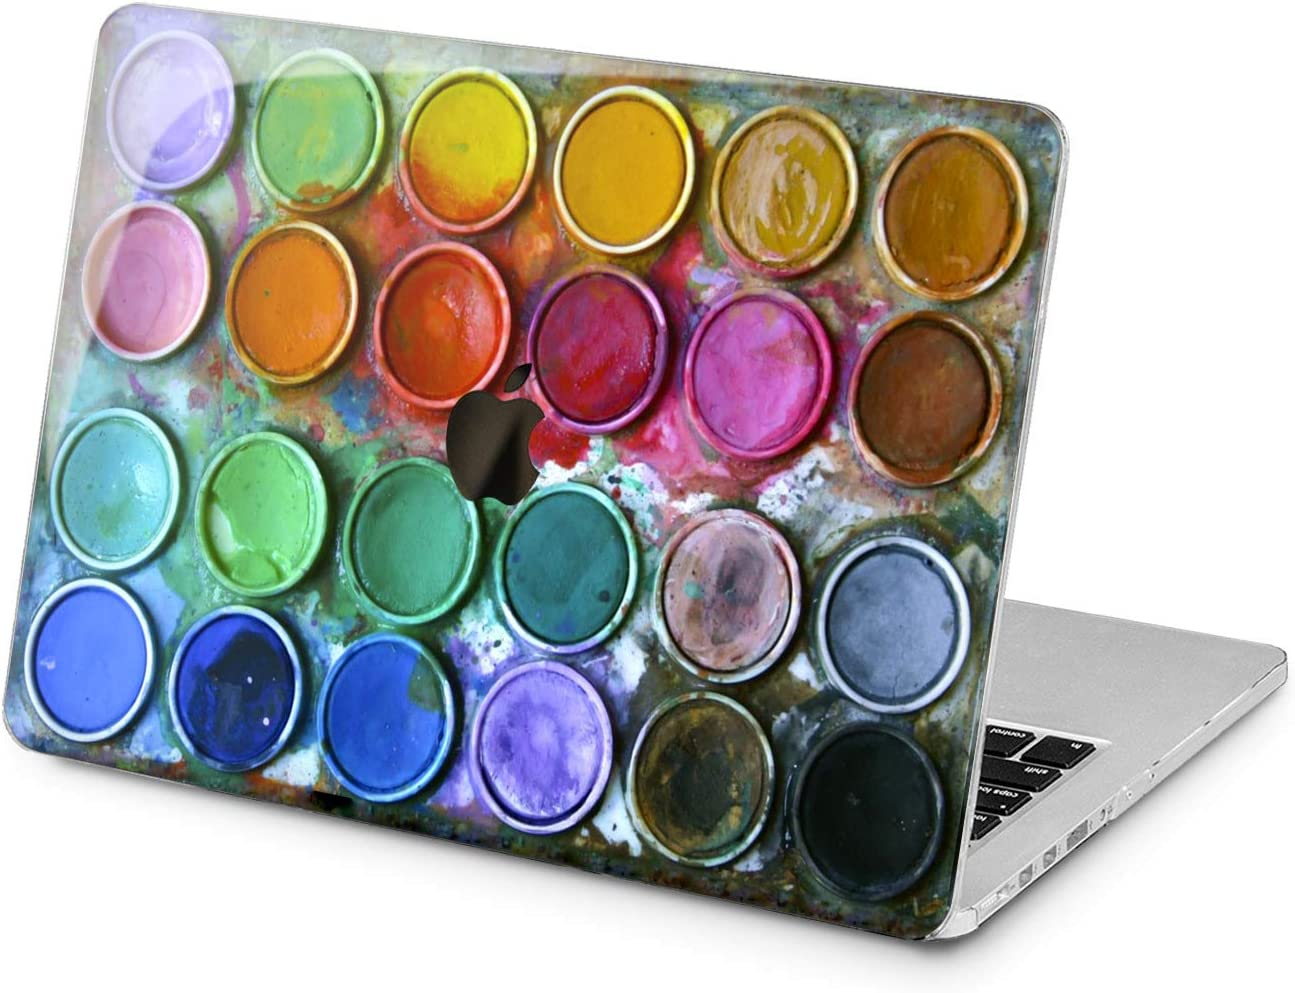 "Cavka Hard Shell Case for Apple MacBook Pro 13"" 2019 15"" 2018 Air 13"" 2020 Retina 2015 Mac 11"" Mac 12"" New Cover Protective Print Unique Laptop Cute Art Paint Watercolor Design Boxes Rainbow Plastic"